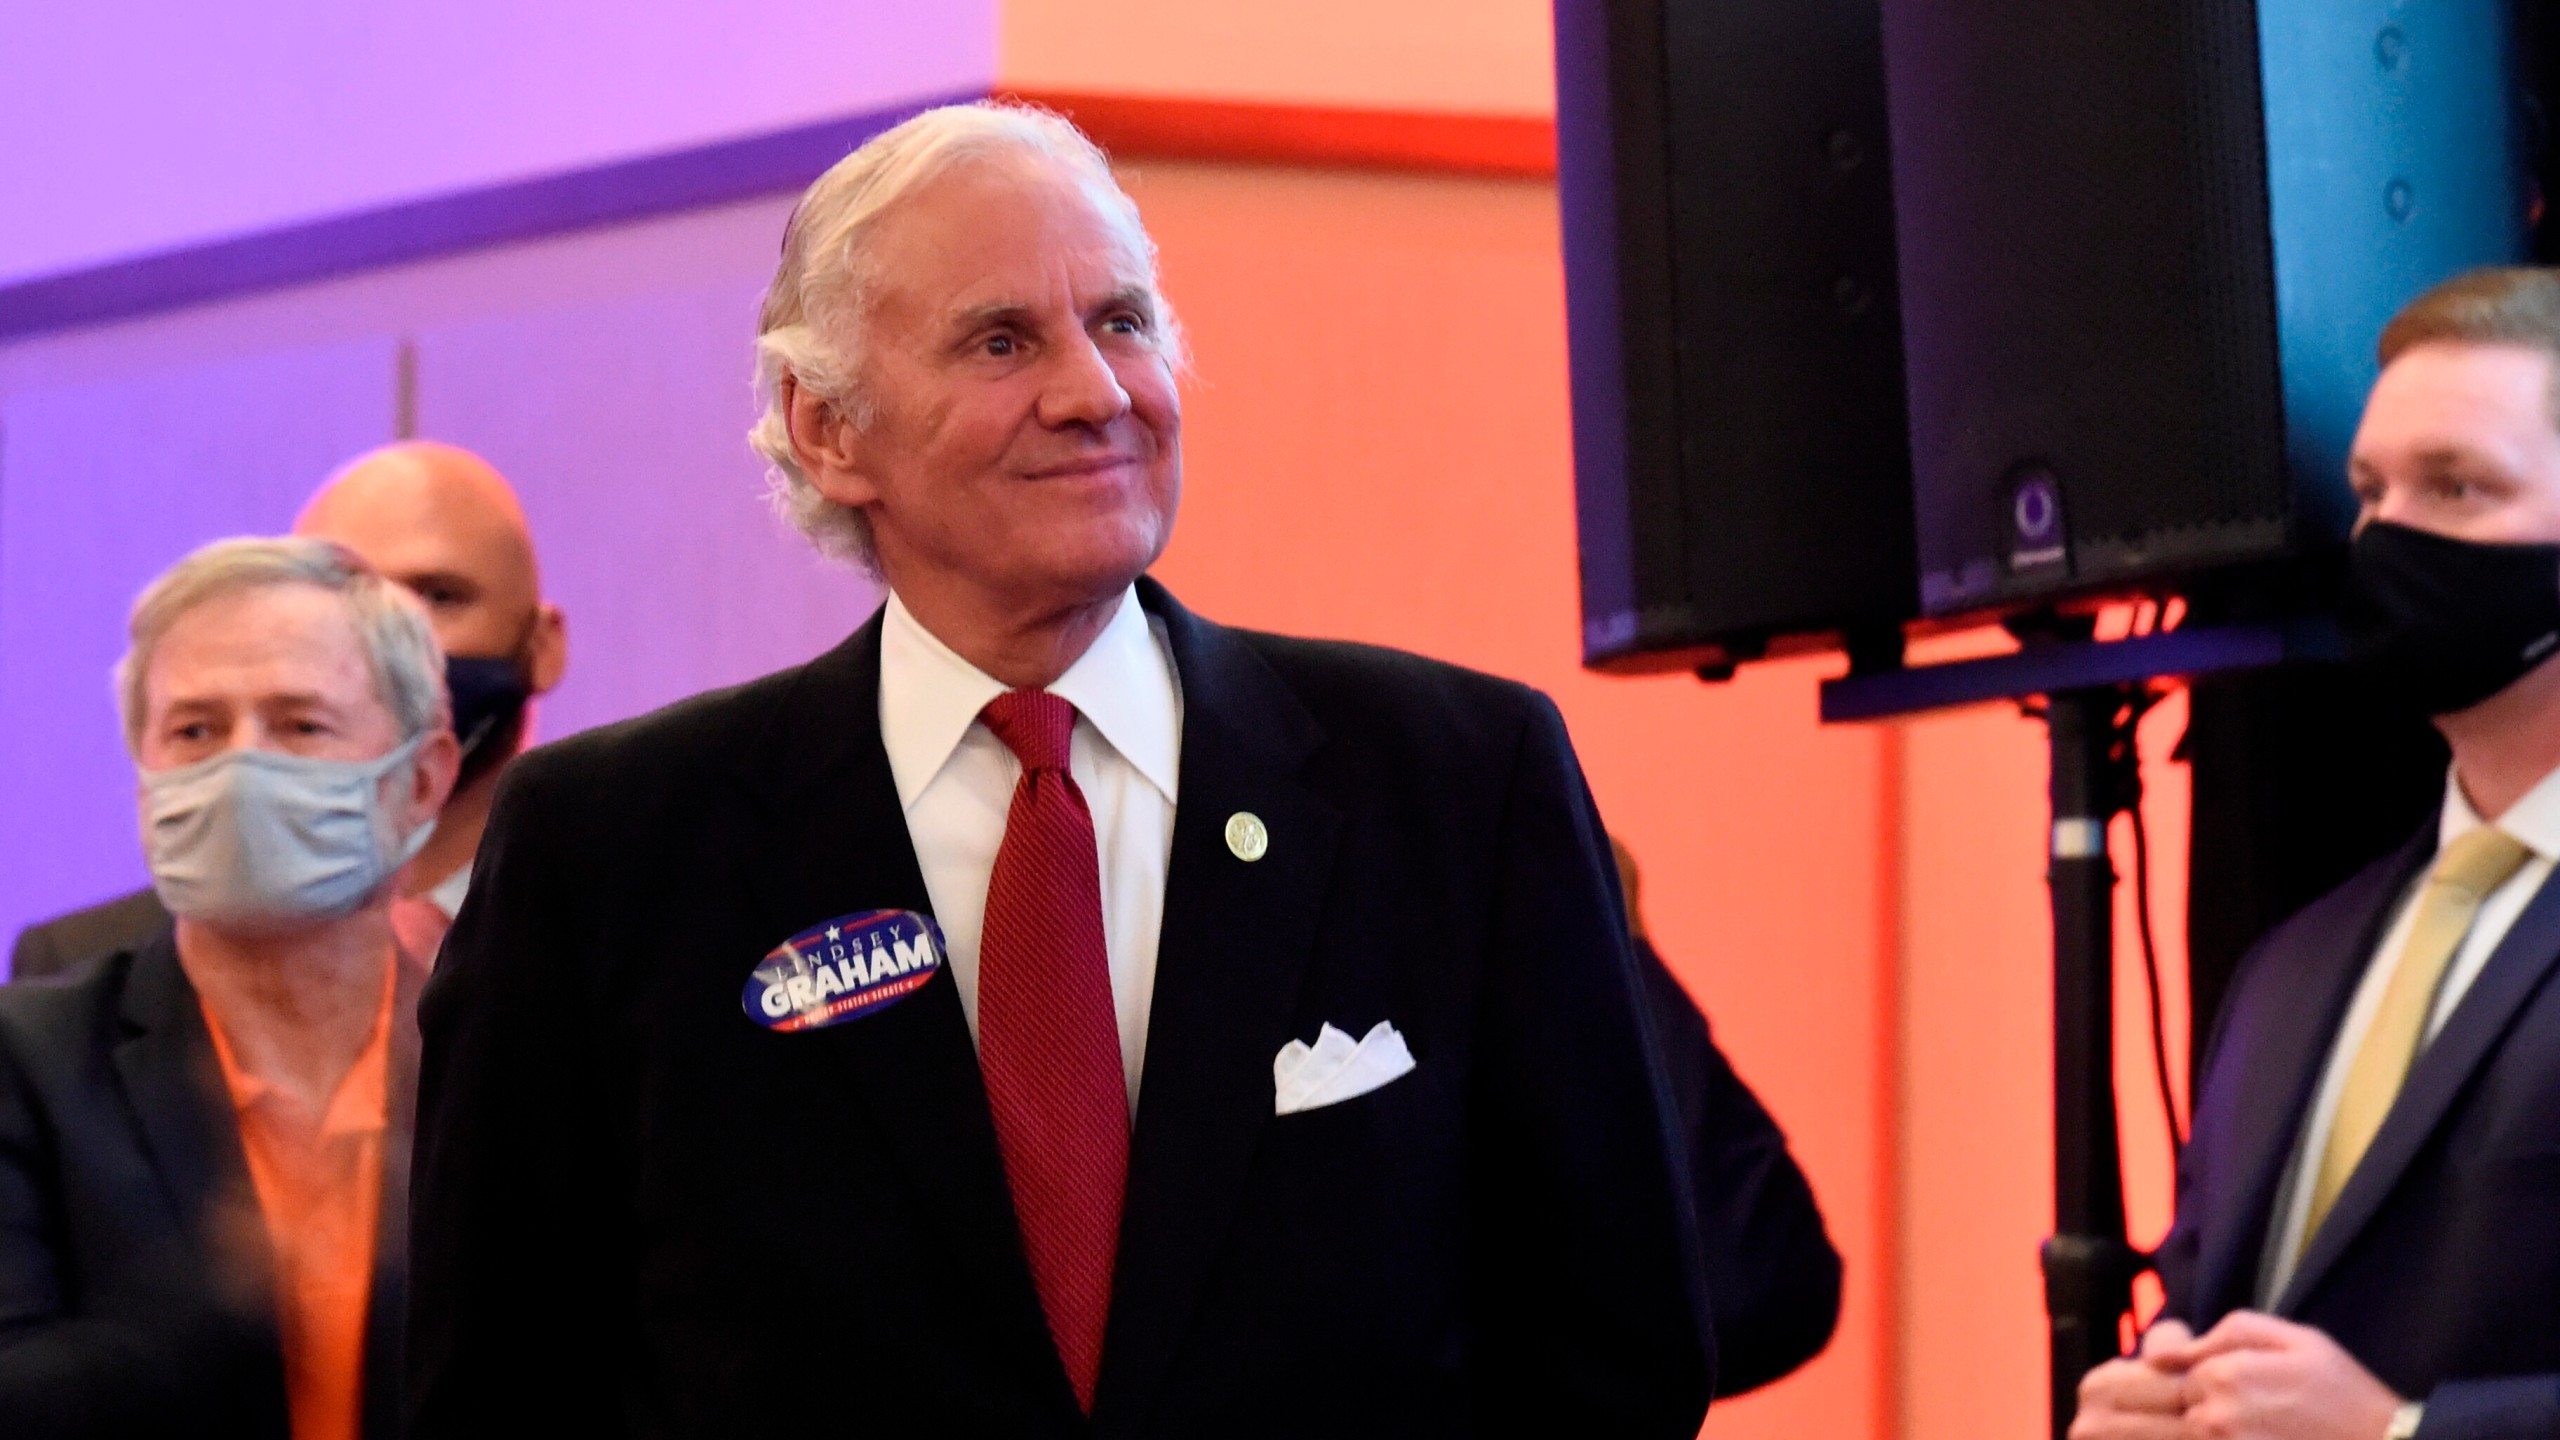 Henry McMaster